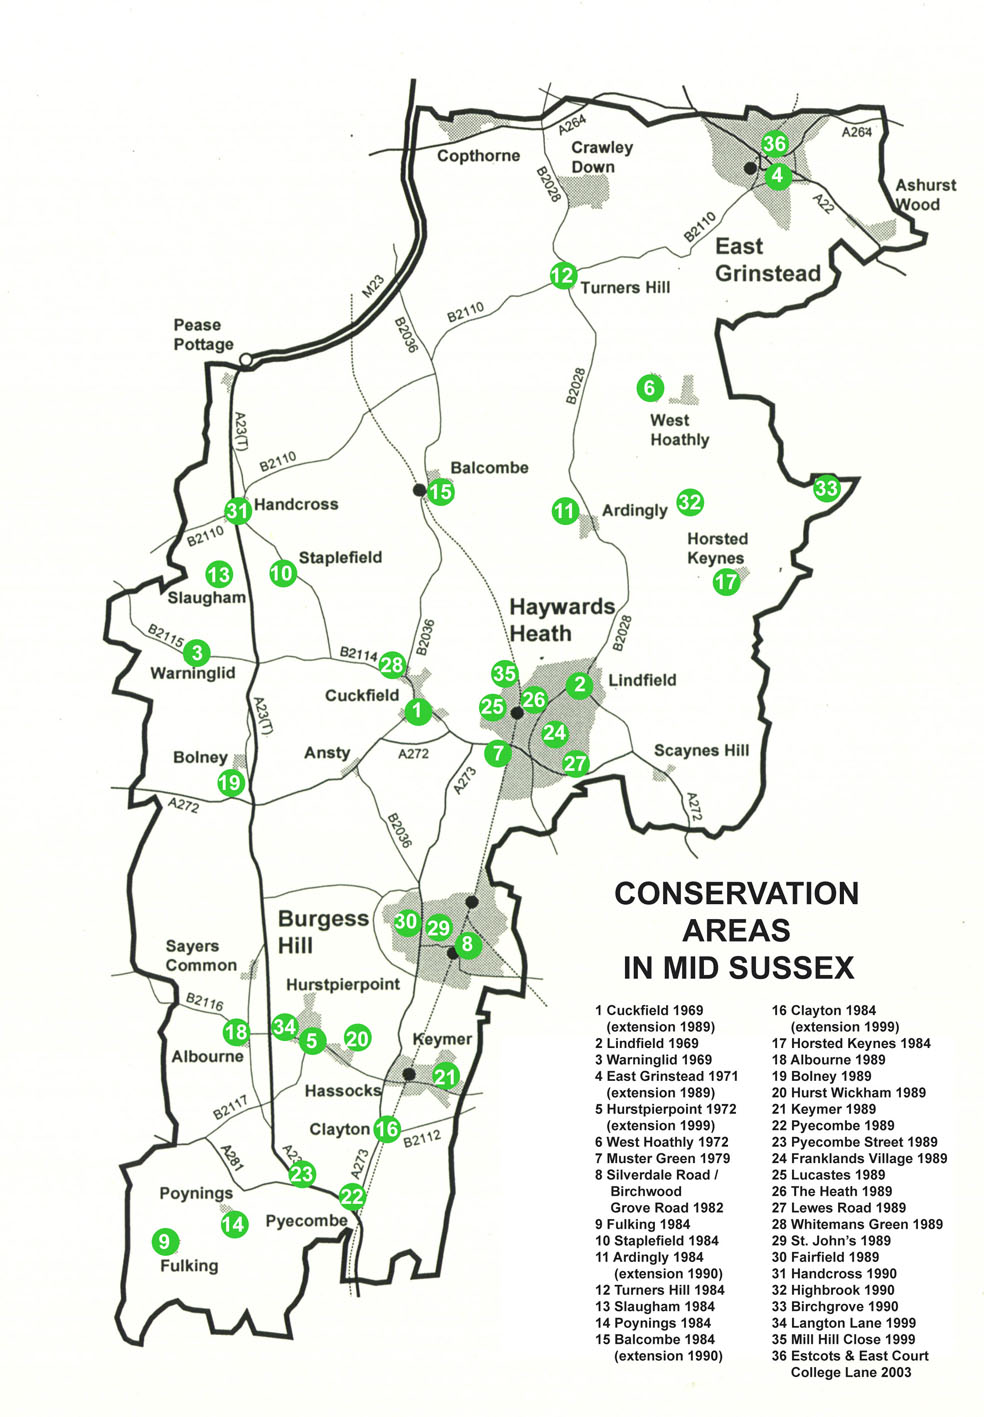 Map of Conservation Areas in Mid Sussex